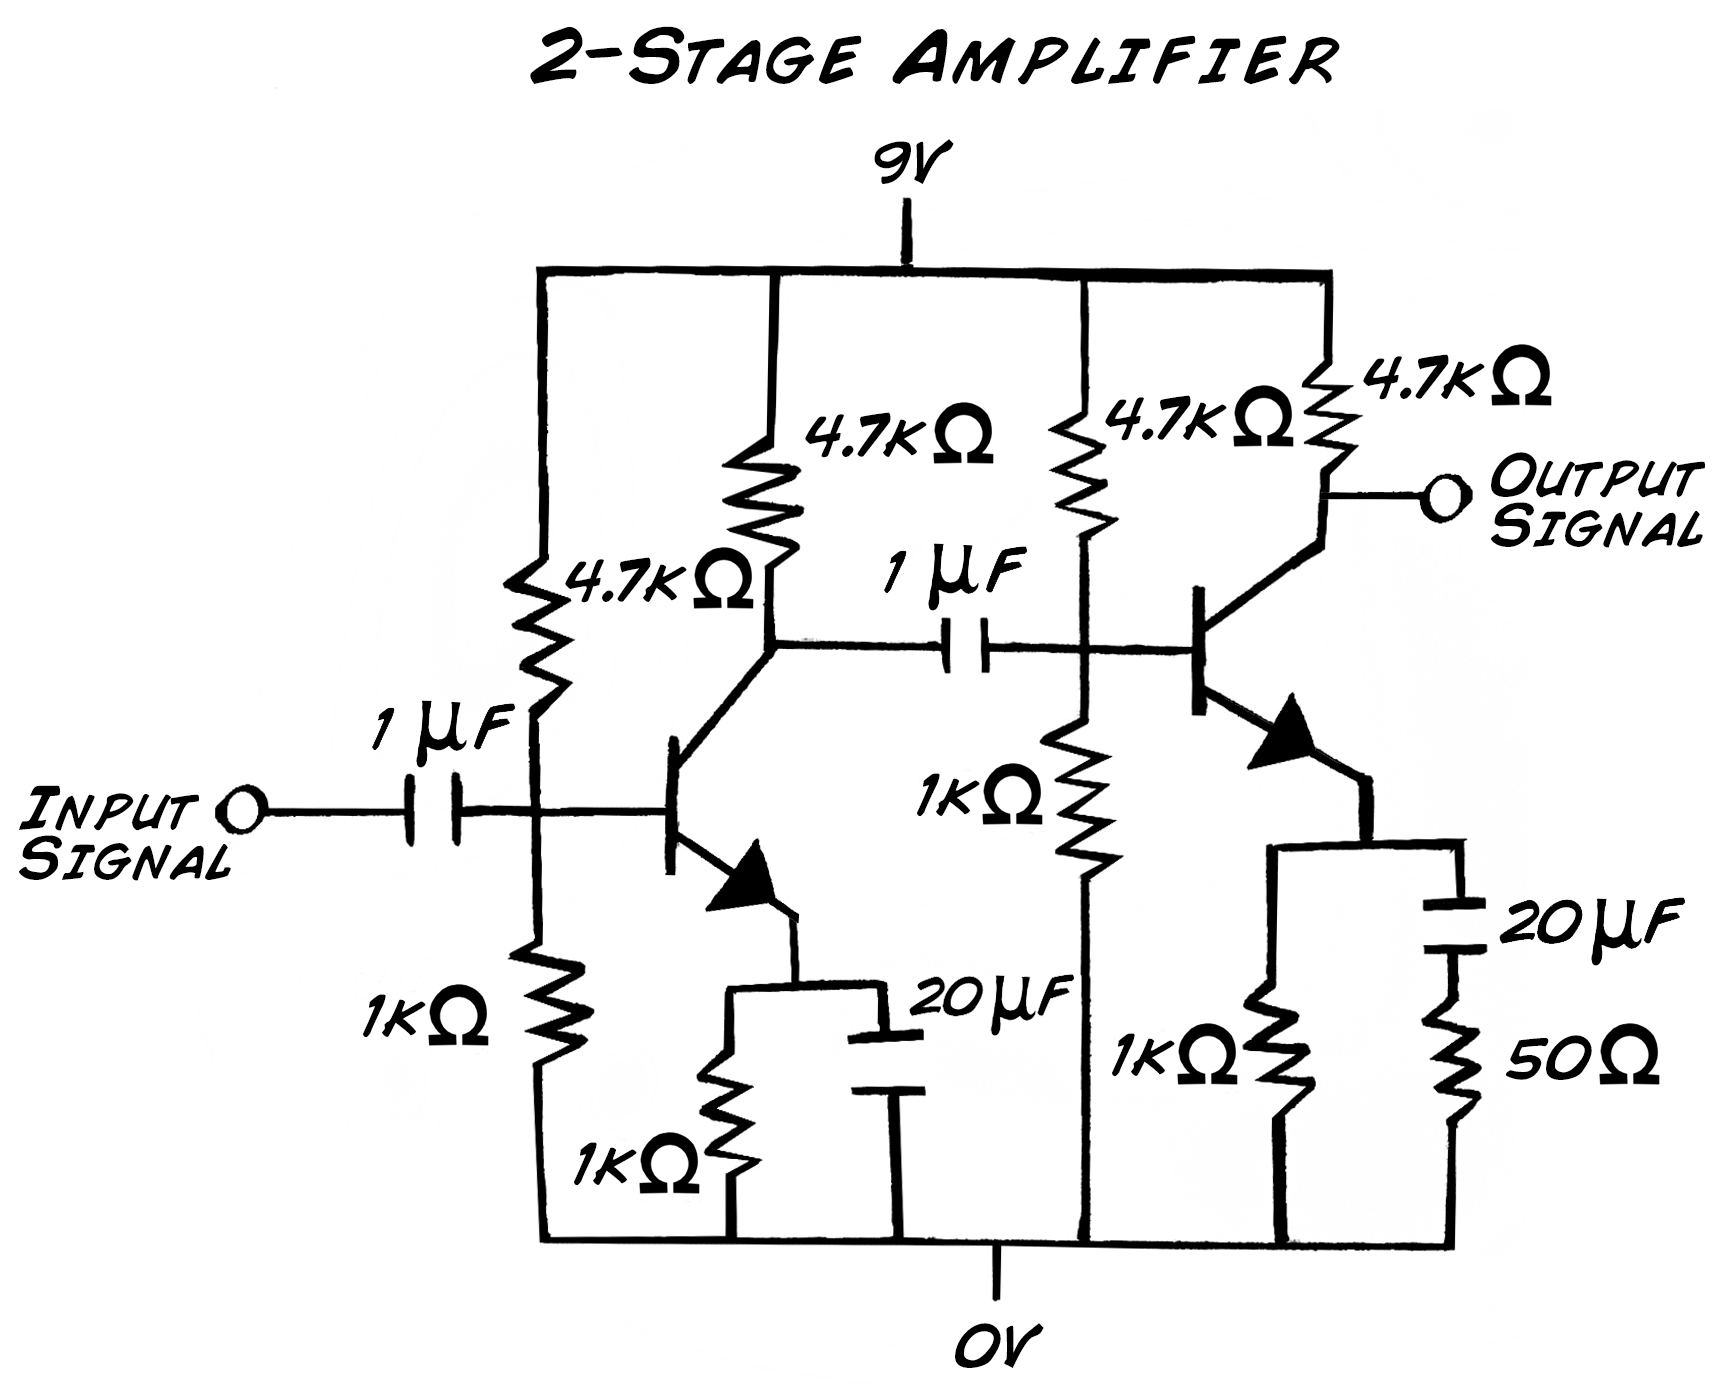 Experiment Transistor Circuit Design Supplycircuit Adjustableconstantcurrentsourcecircuitdiagram Build The